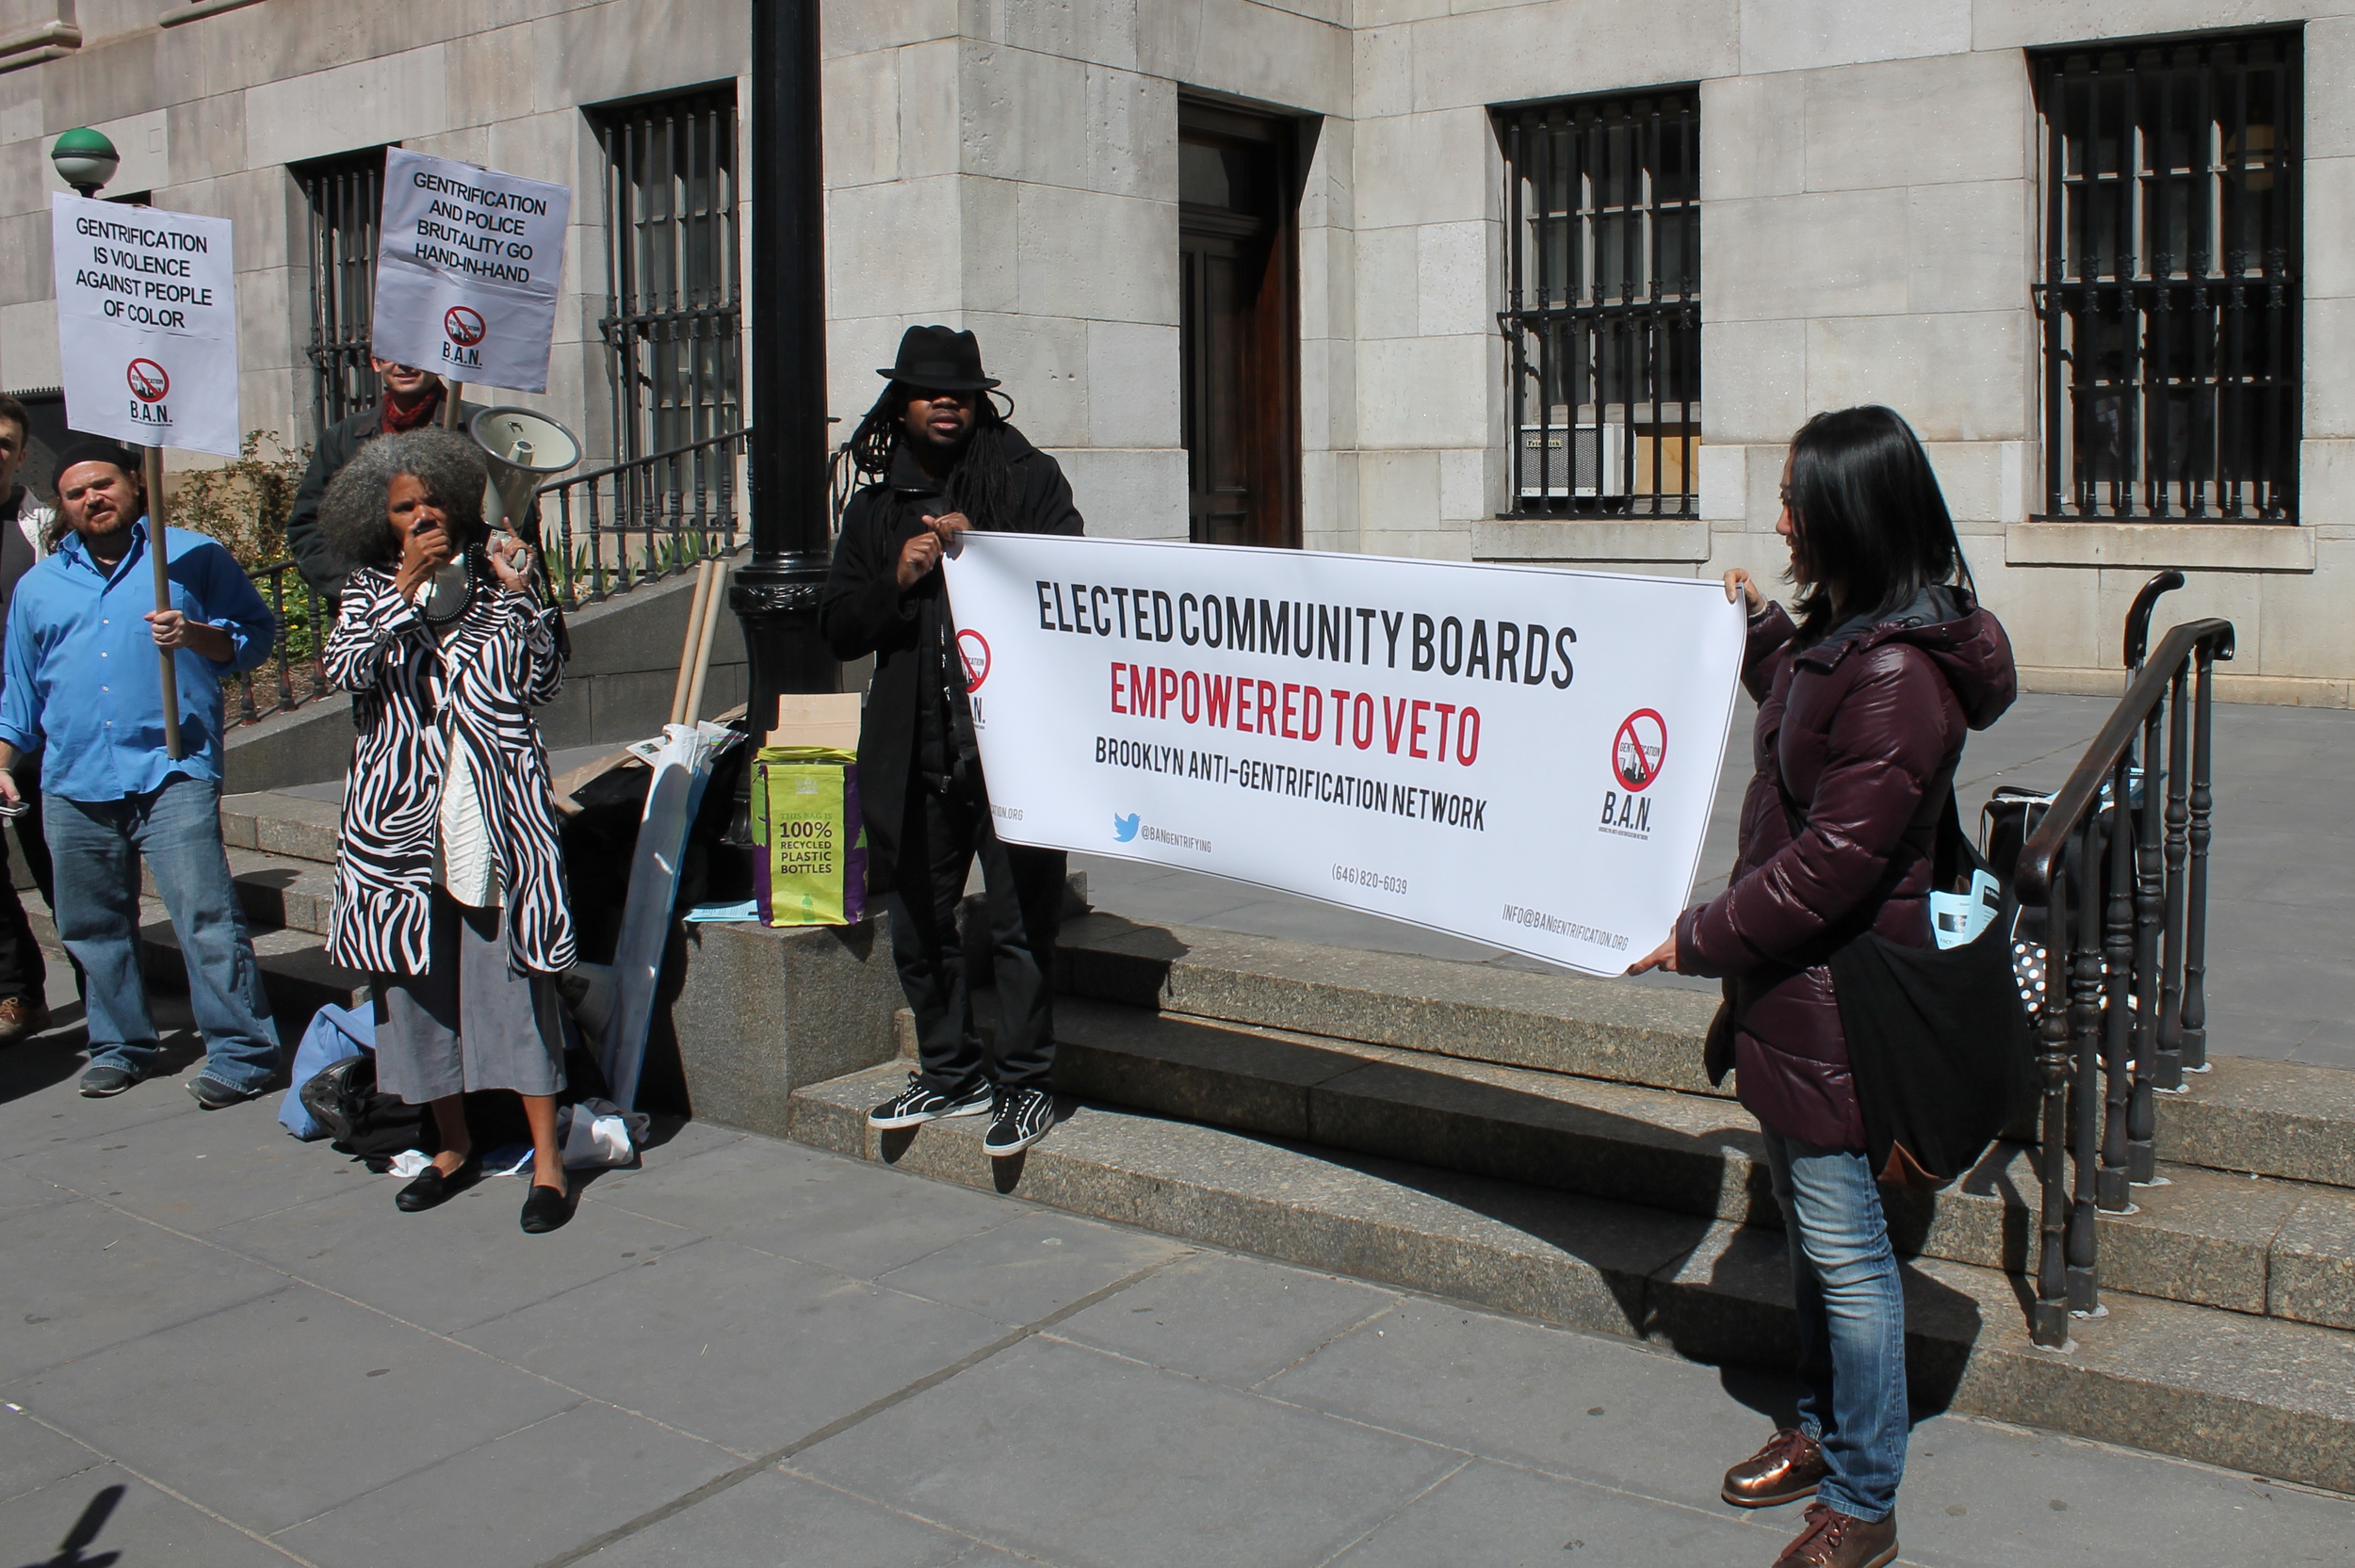 Activists and New York City residents participated in a press conference and community speak-out on Wednesday outside Brooklyn Borough Hall to demand reforms to the Community Board system of New York City government. Source : Louis Flores